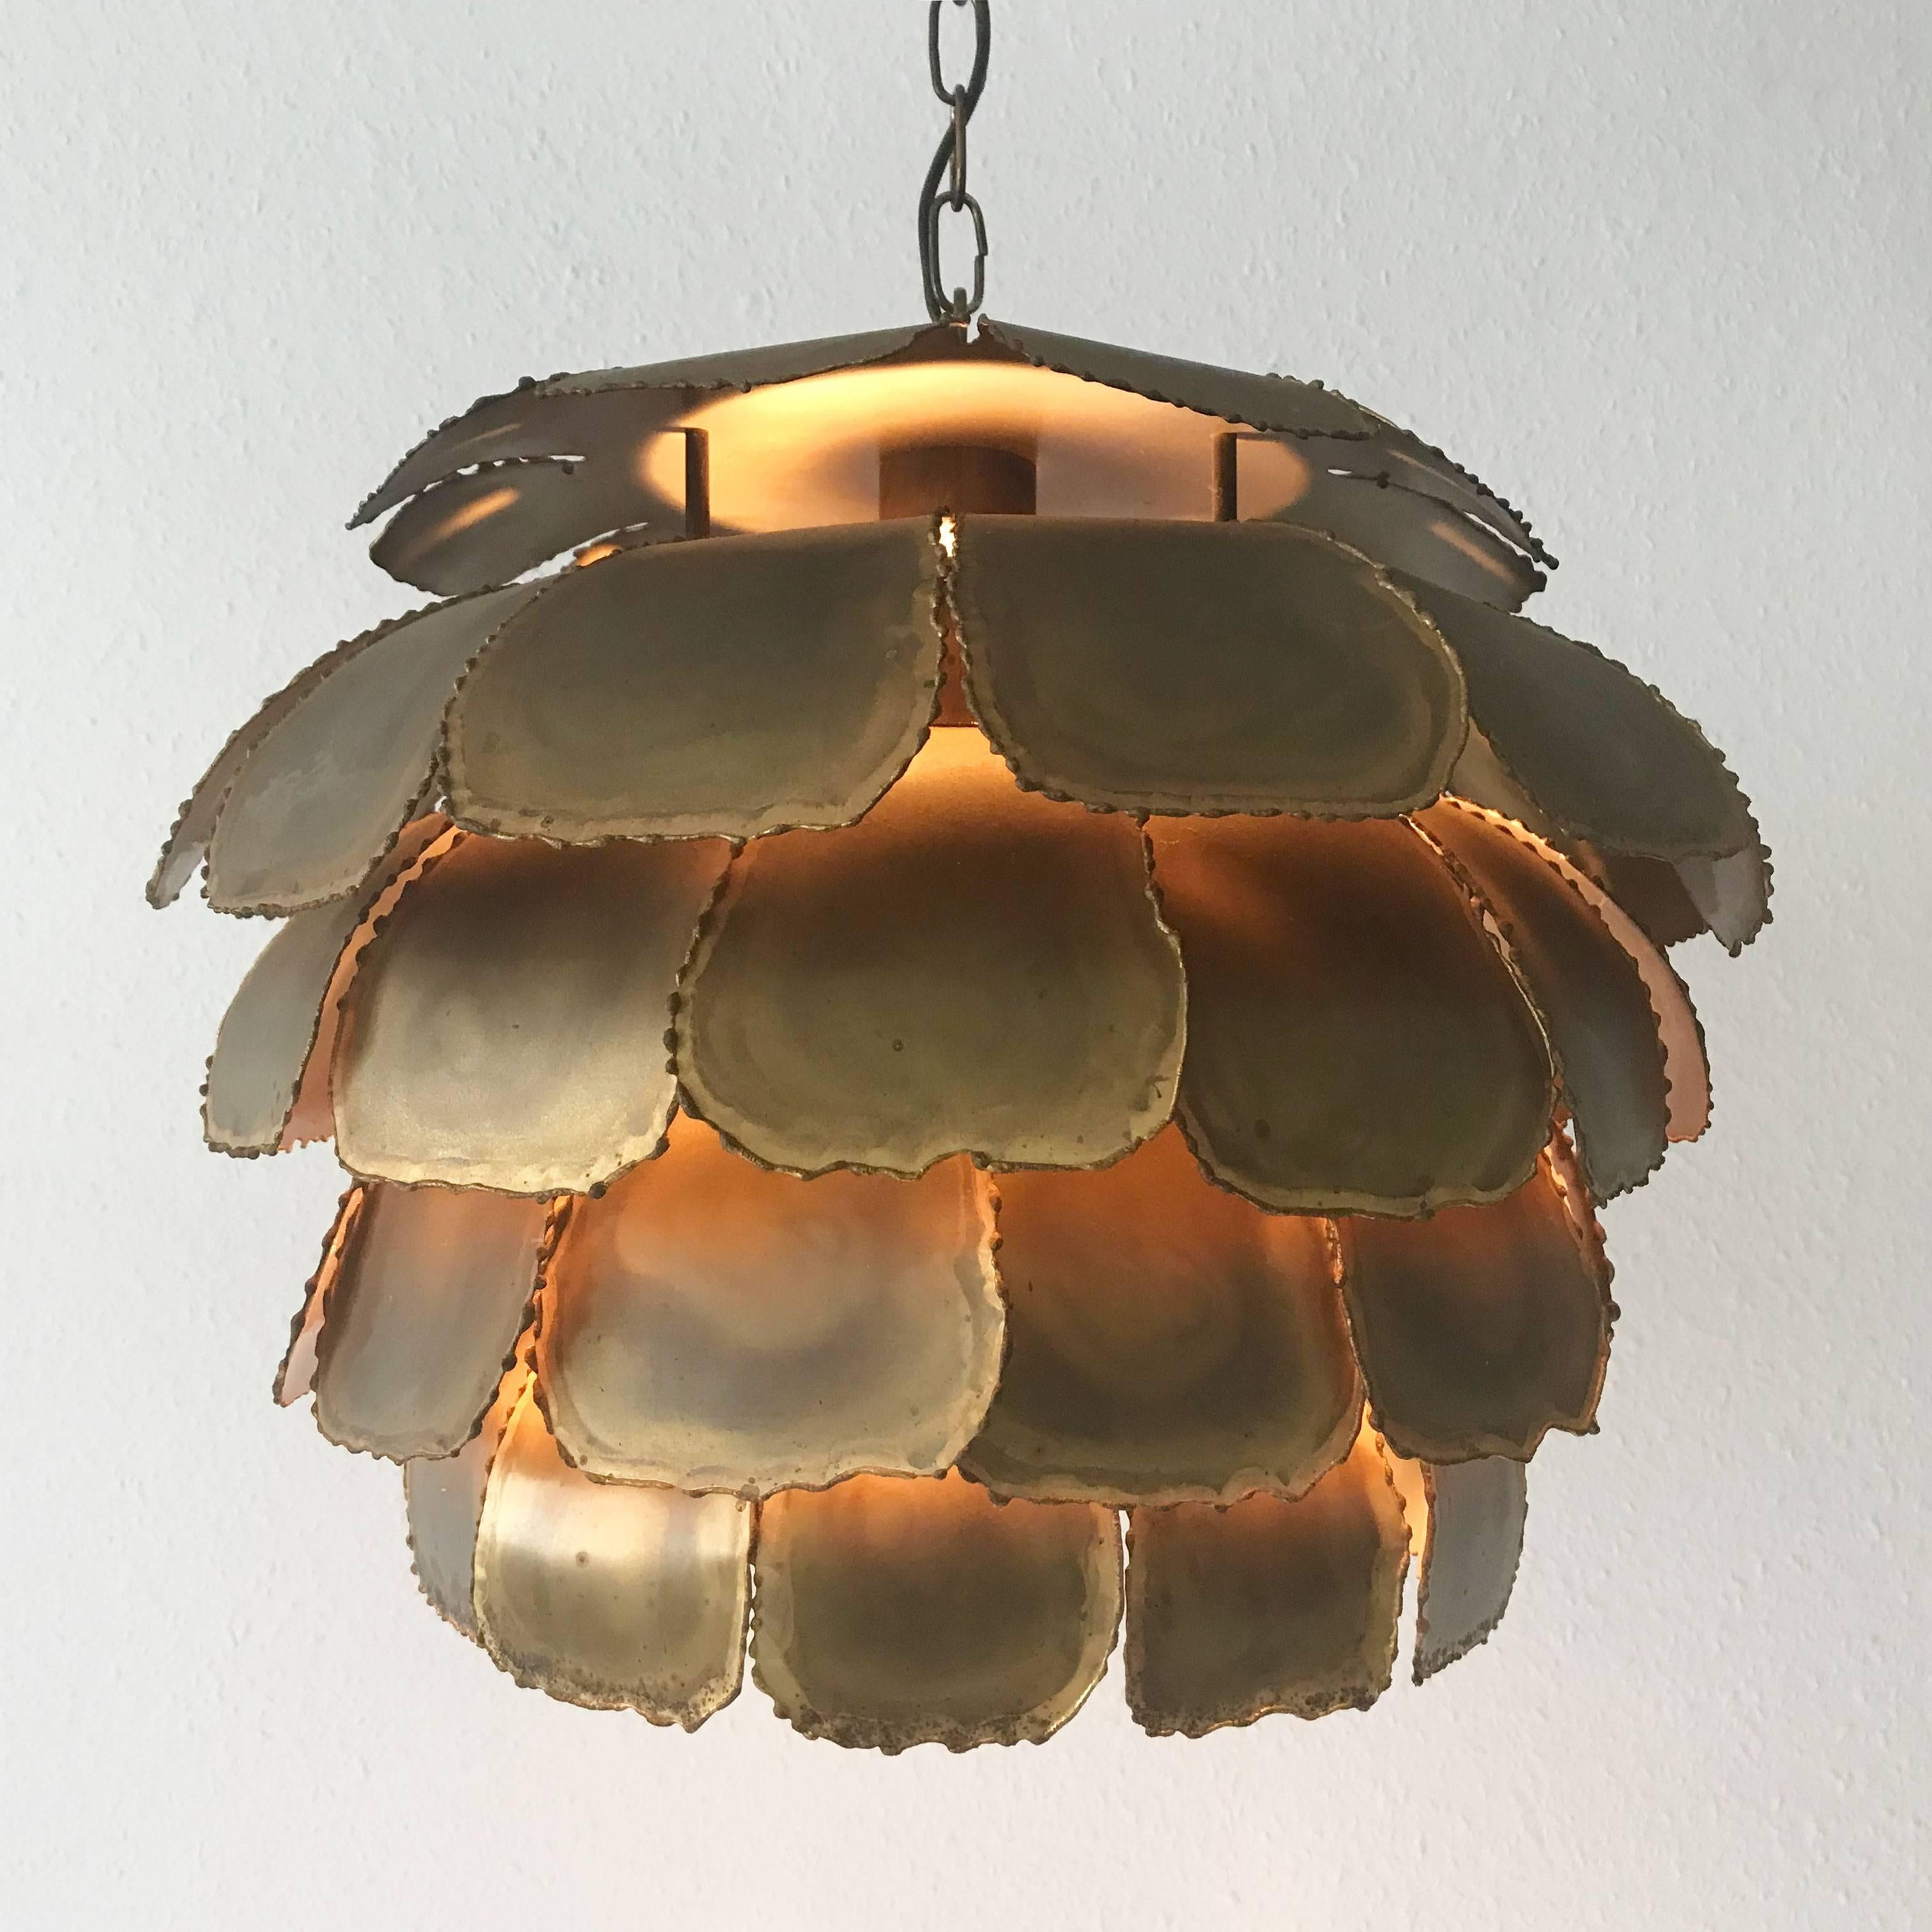 Pendant lamp artichoke by svend aage holm sorensen for holm srensen pendant lamp artichoke by svend aage holm sorensen for holm srensen 1960s for sale at 1stdibs aloadofball Image collections